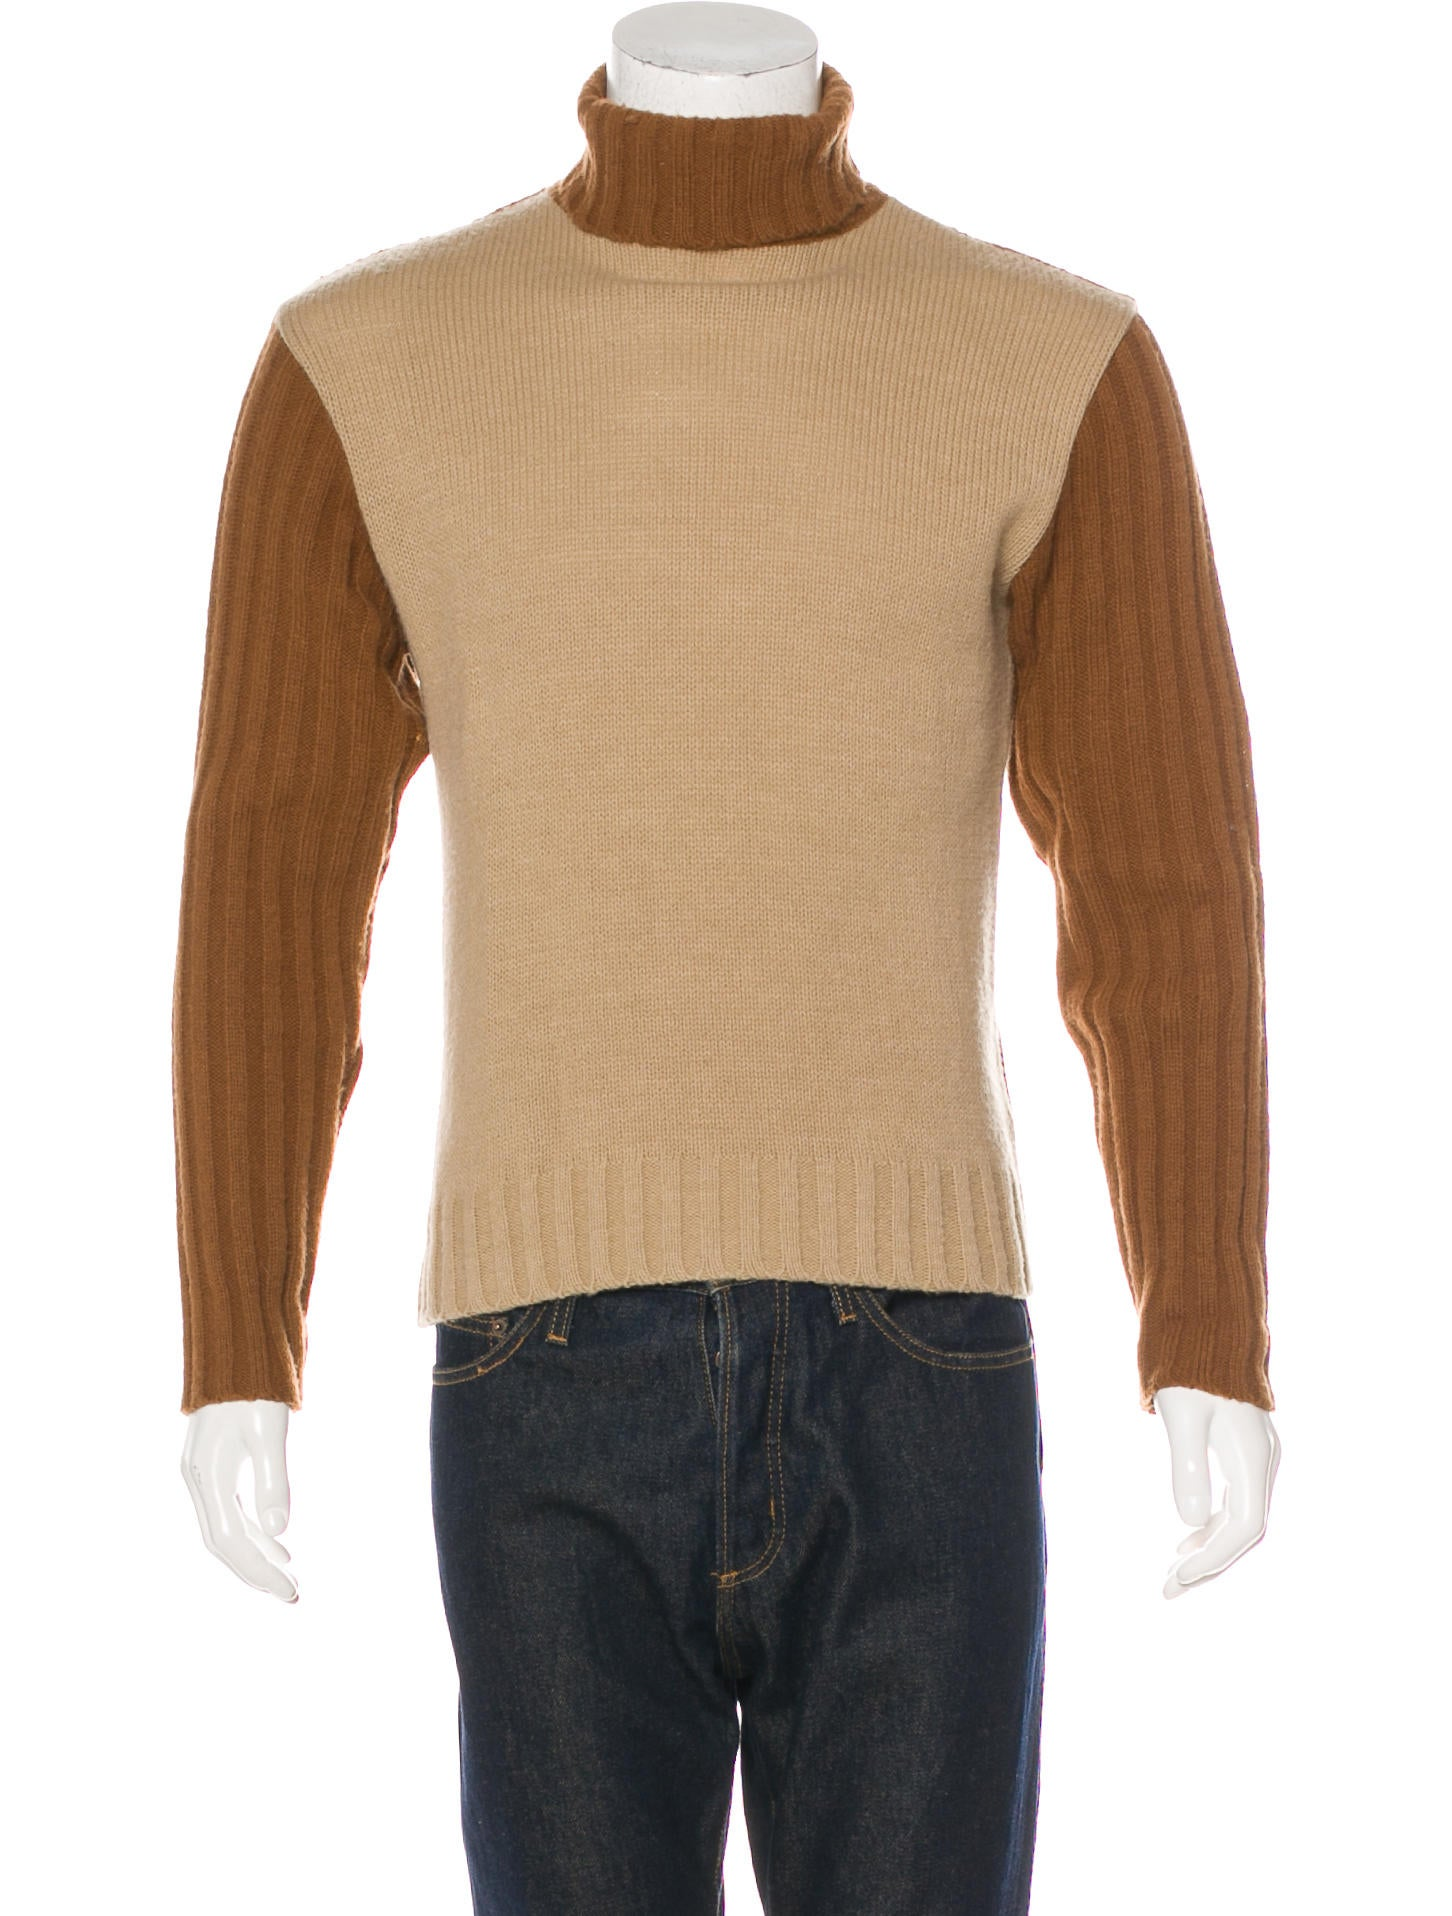 D&G Wool-Blend Turtleneck Sweater How Much Cheap Price 6QT93Sl